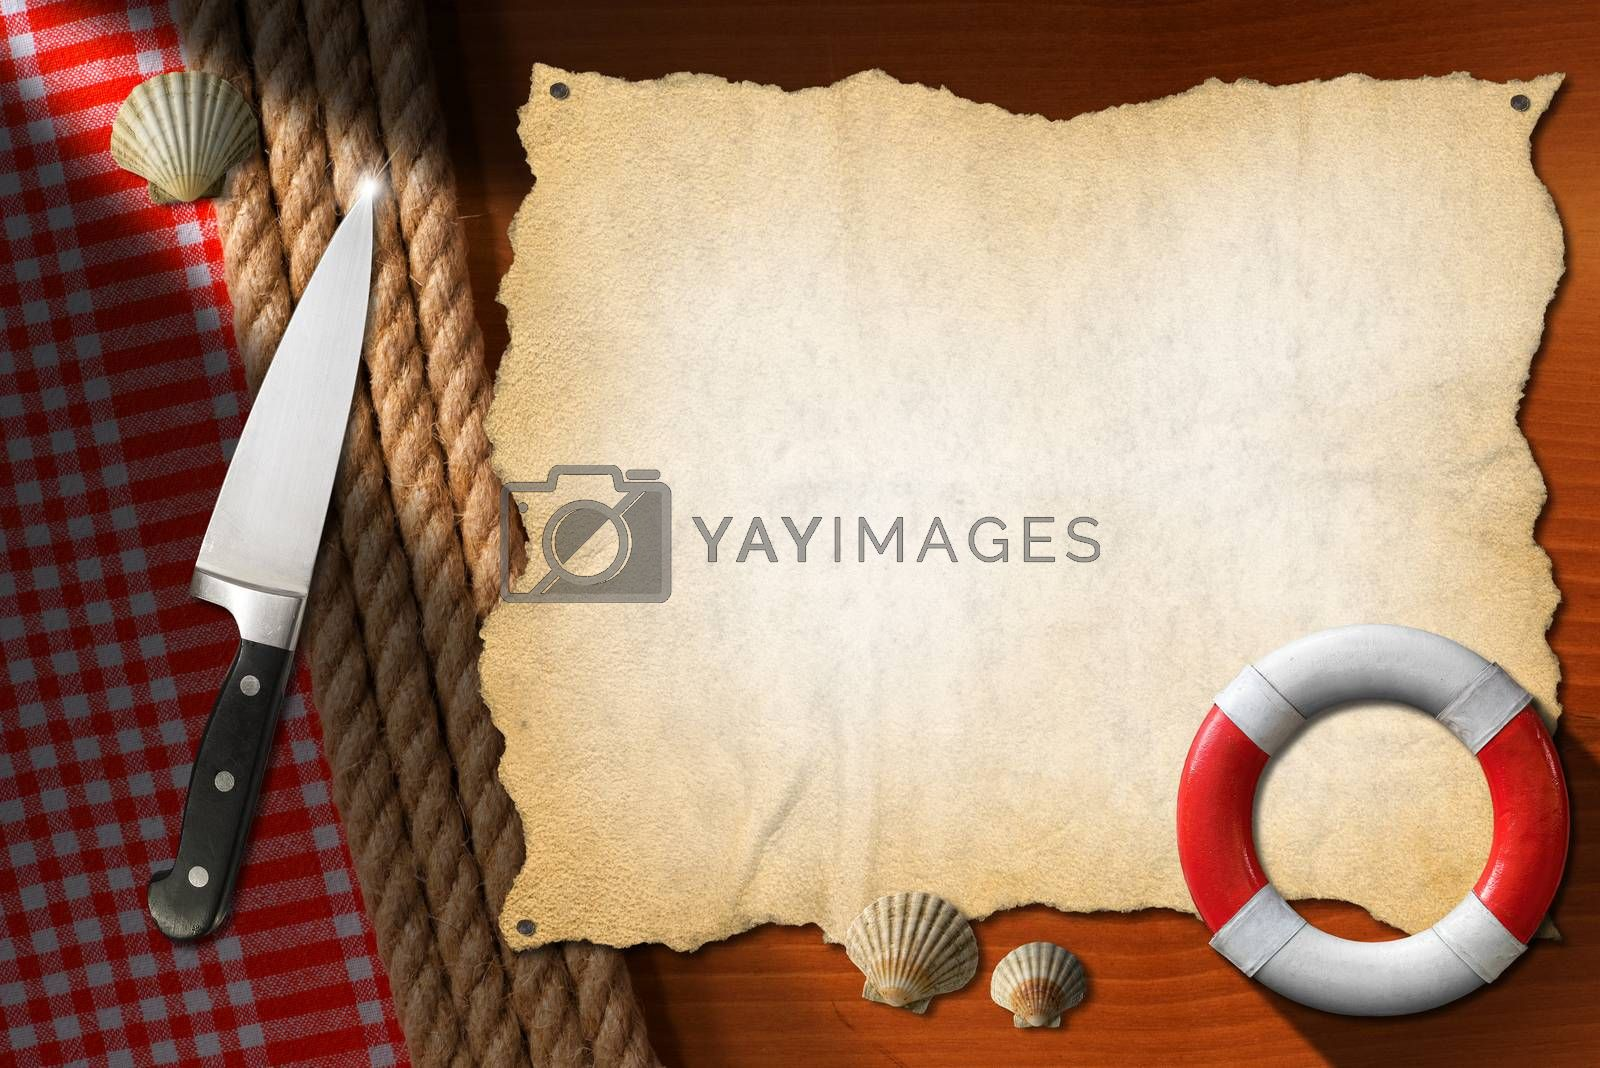 Empty parchment on brown wood wall with ropes and red checked tablecloth, kitchen knife, seashells, red and white lifebuoy. Template for recipes or seafood menu